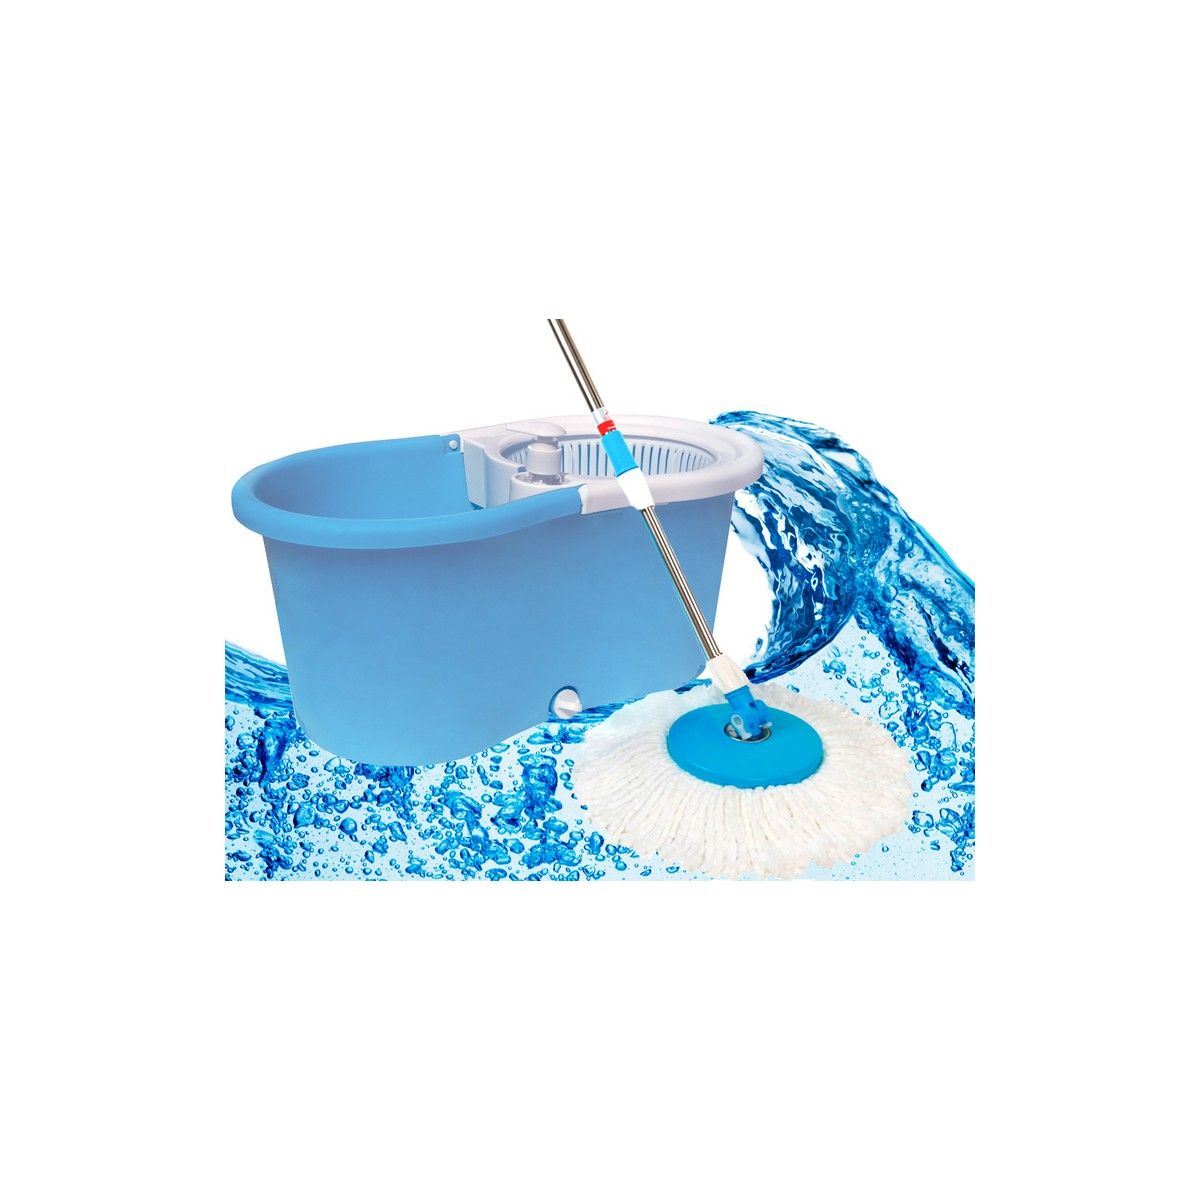 Buy Kawachi Magic Wash Floor Cleaning 360 Spin Mop With